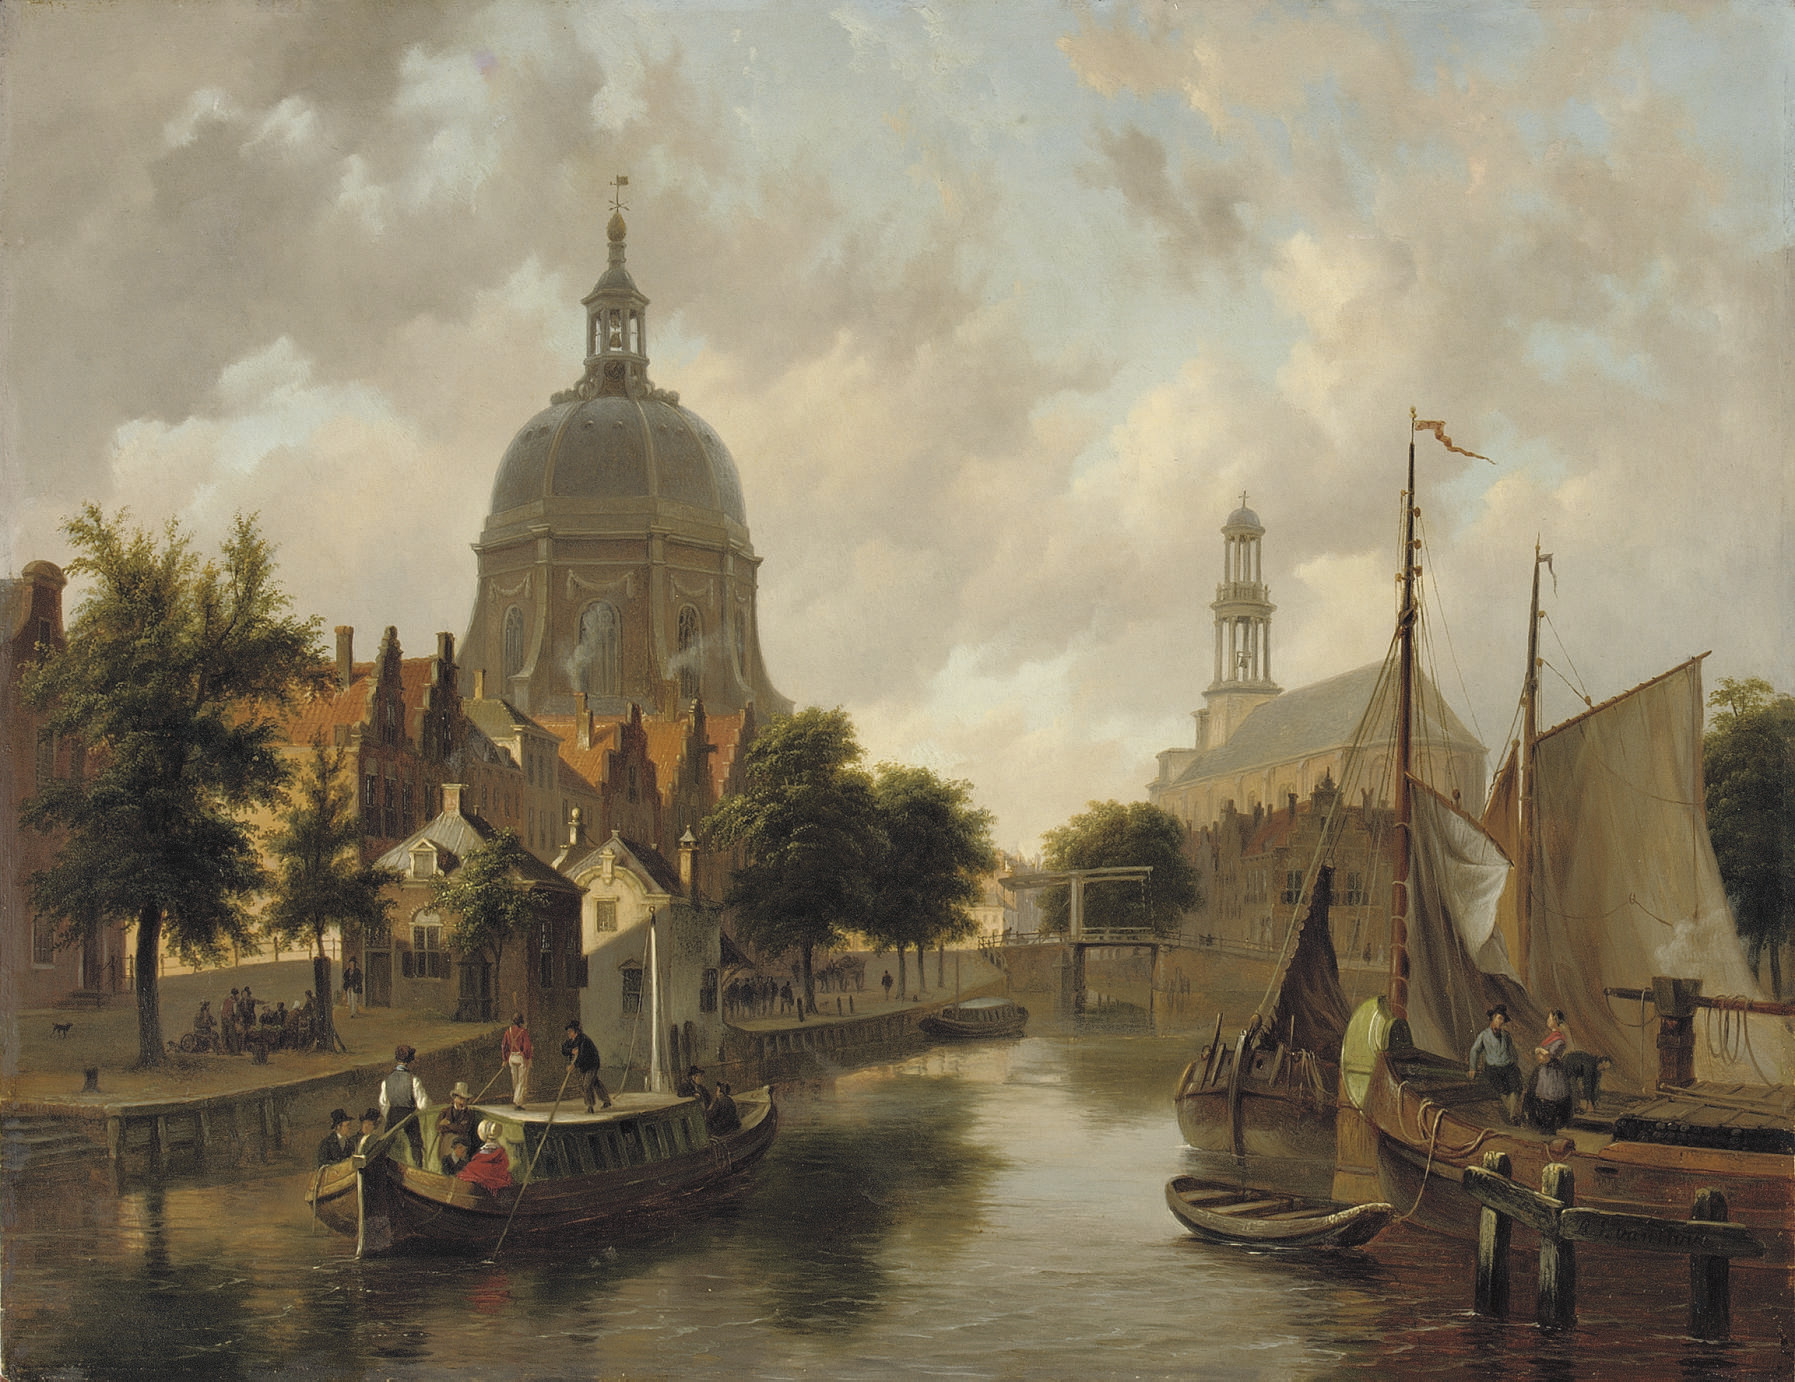 A capriccio view of Leiden, with the Marekerk and the Oude Singel